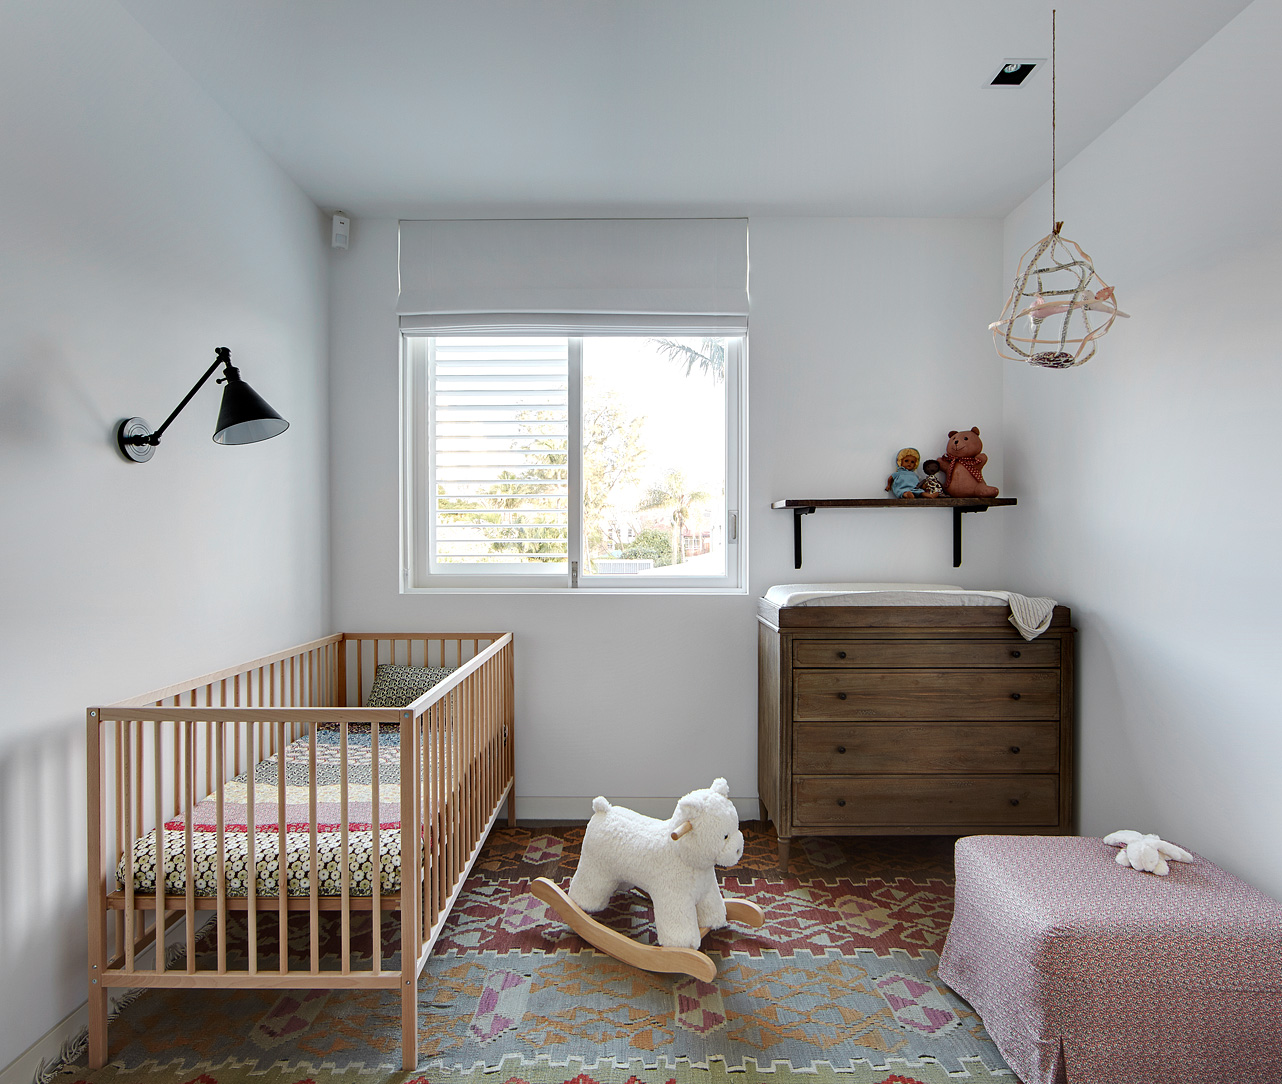 Nursery Décor For The Grown Ups: LEUCHTEND GRAU Interior-Magazin Celebrating Soft